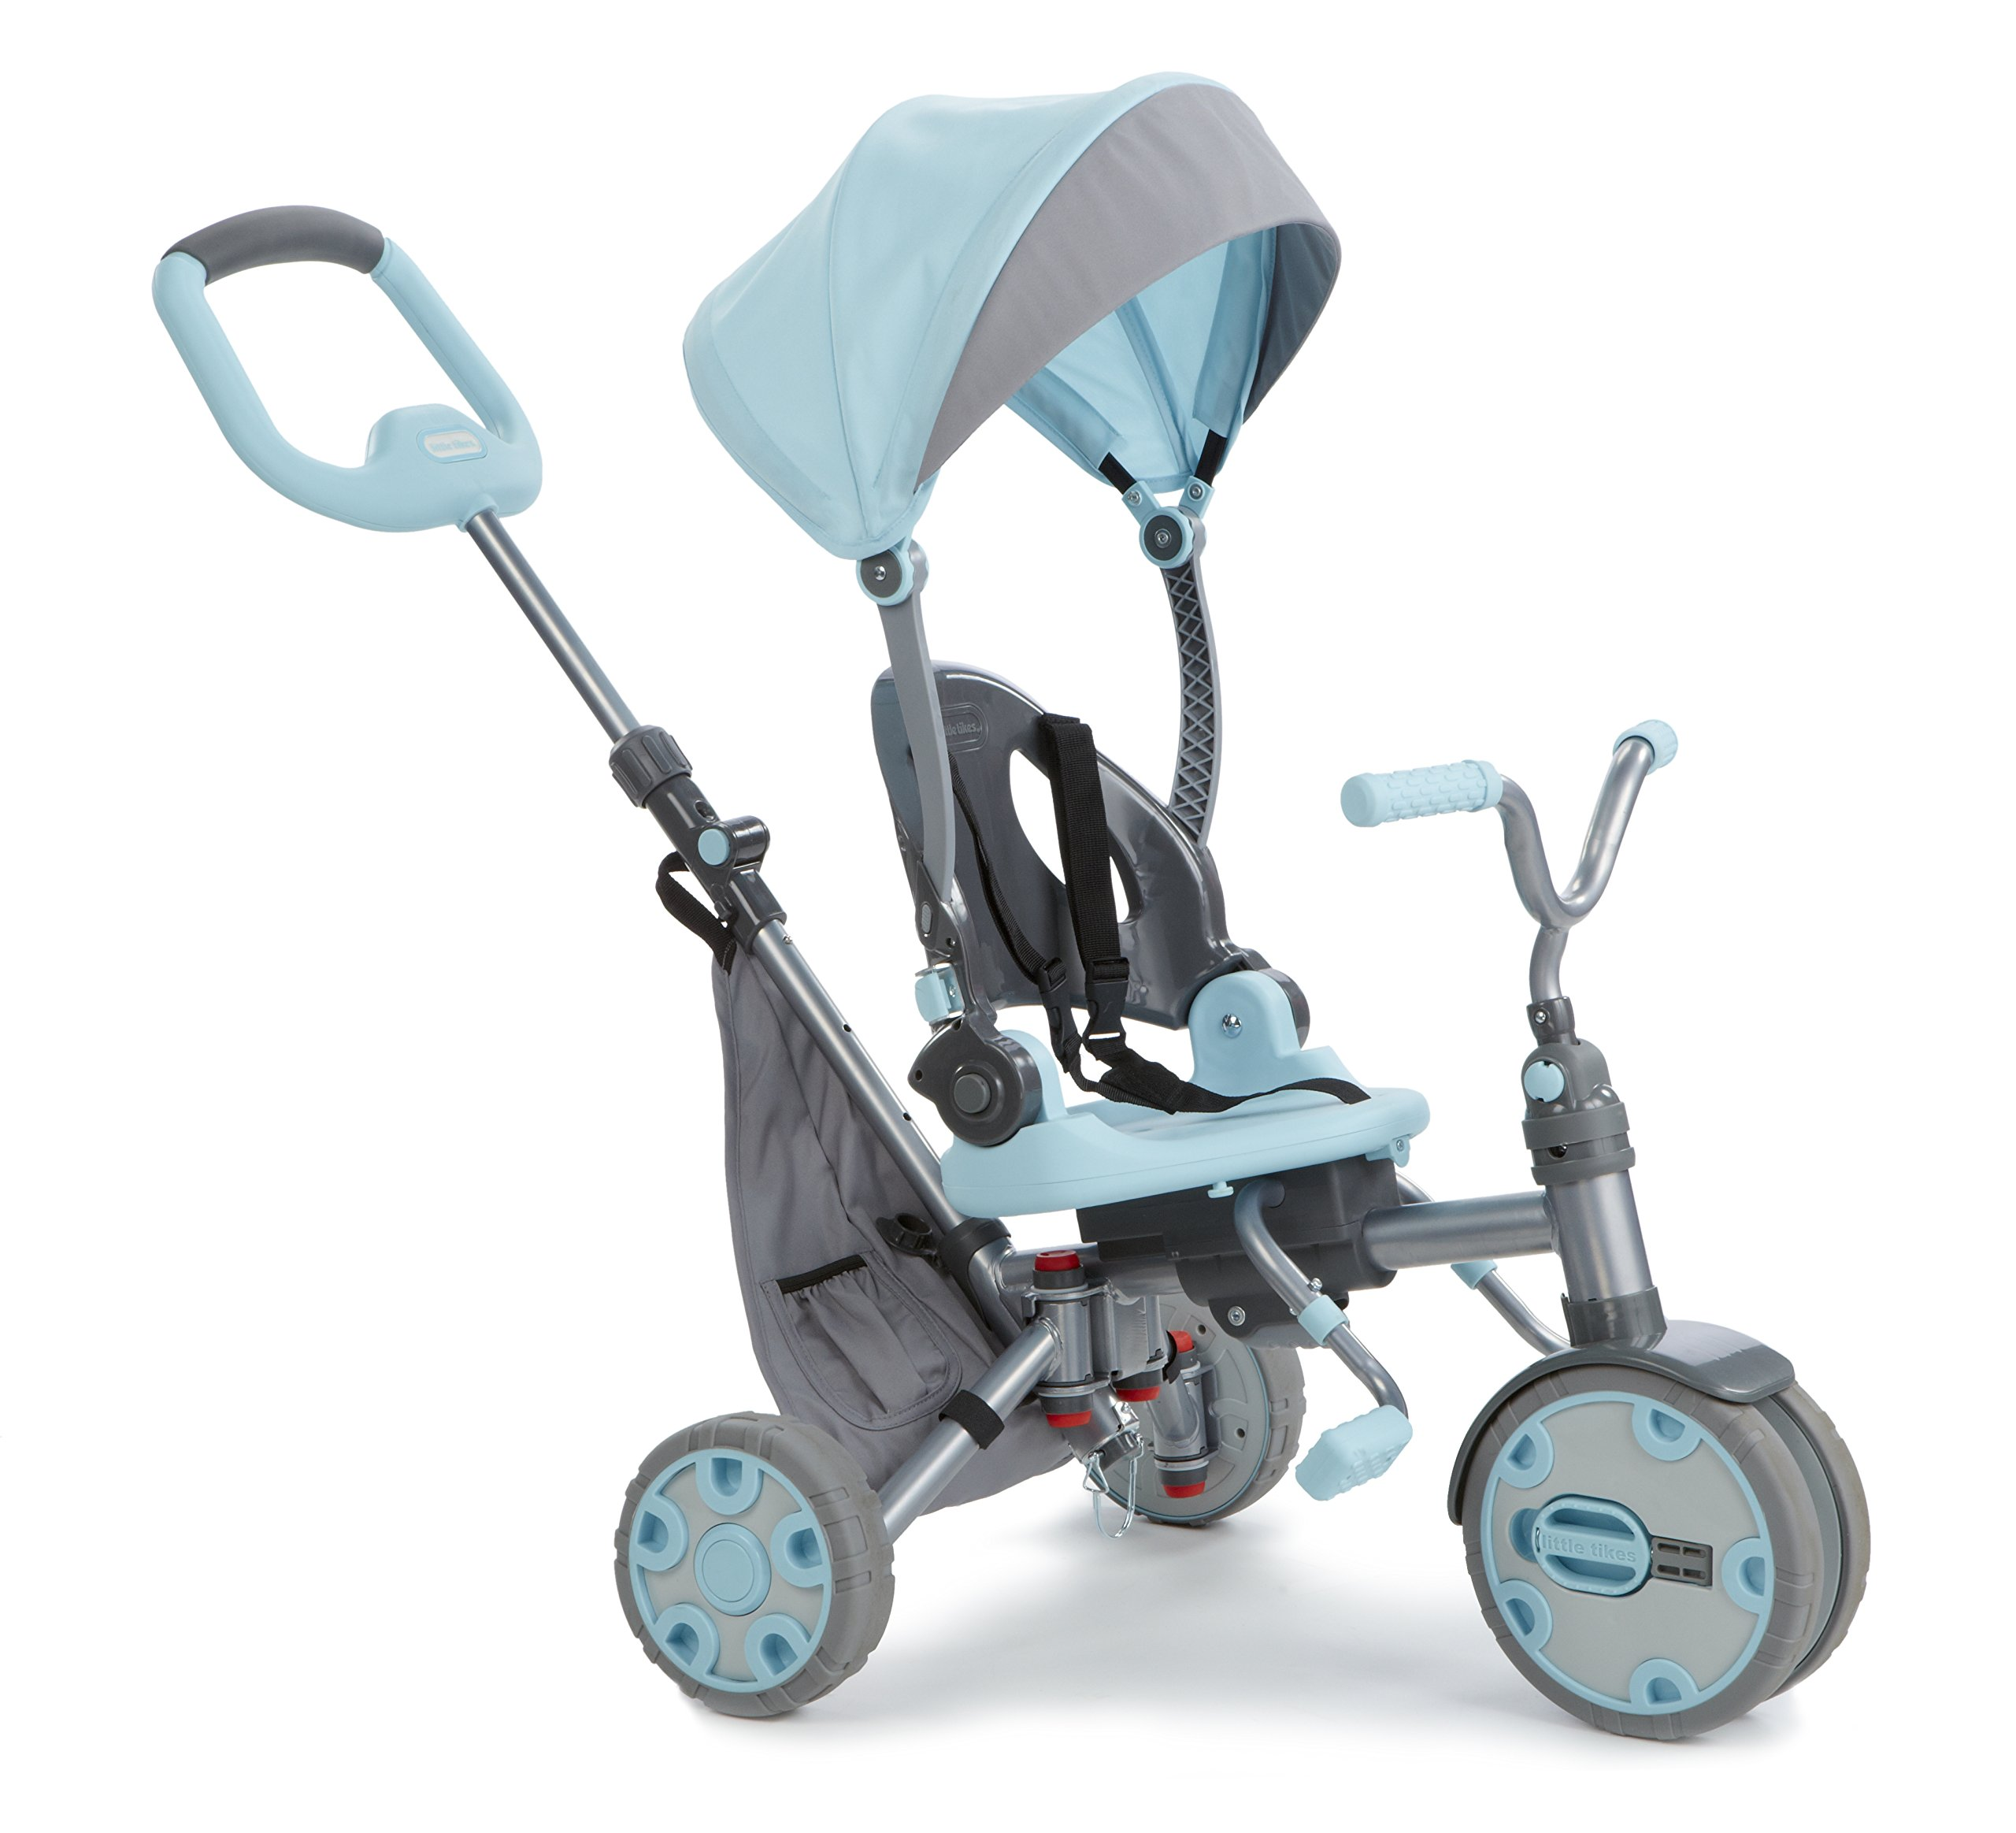 Little Tikes Fold 'N Go 5-in-1 Trike – Sky Blue by Little Tikes